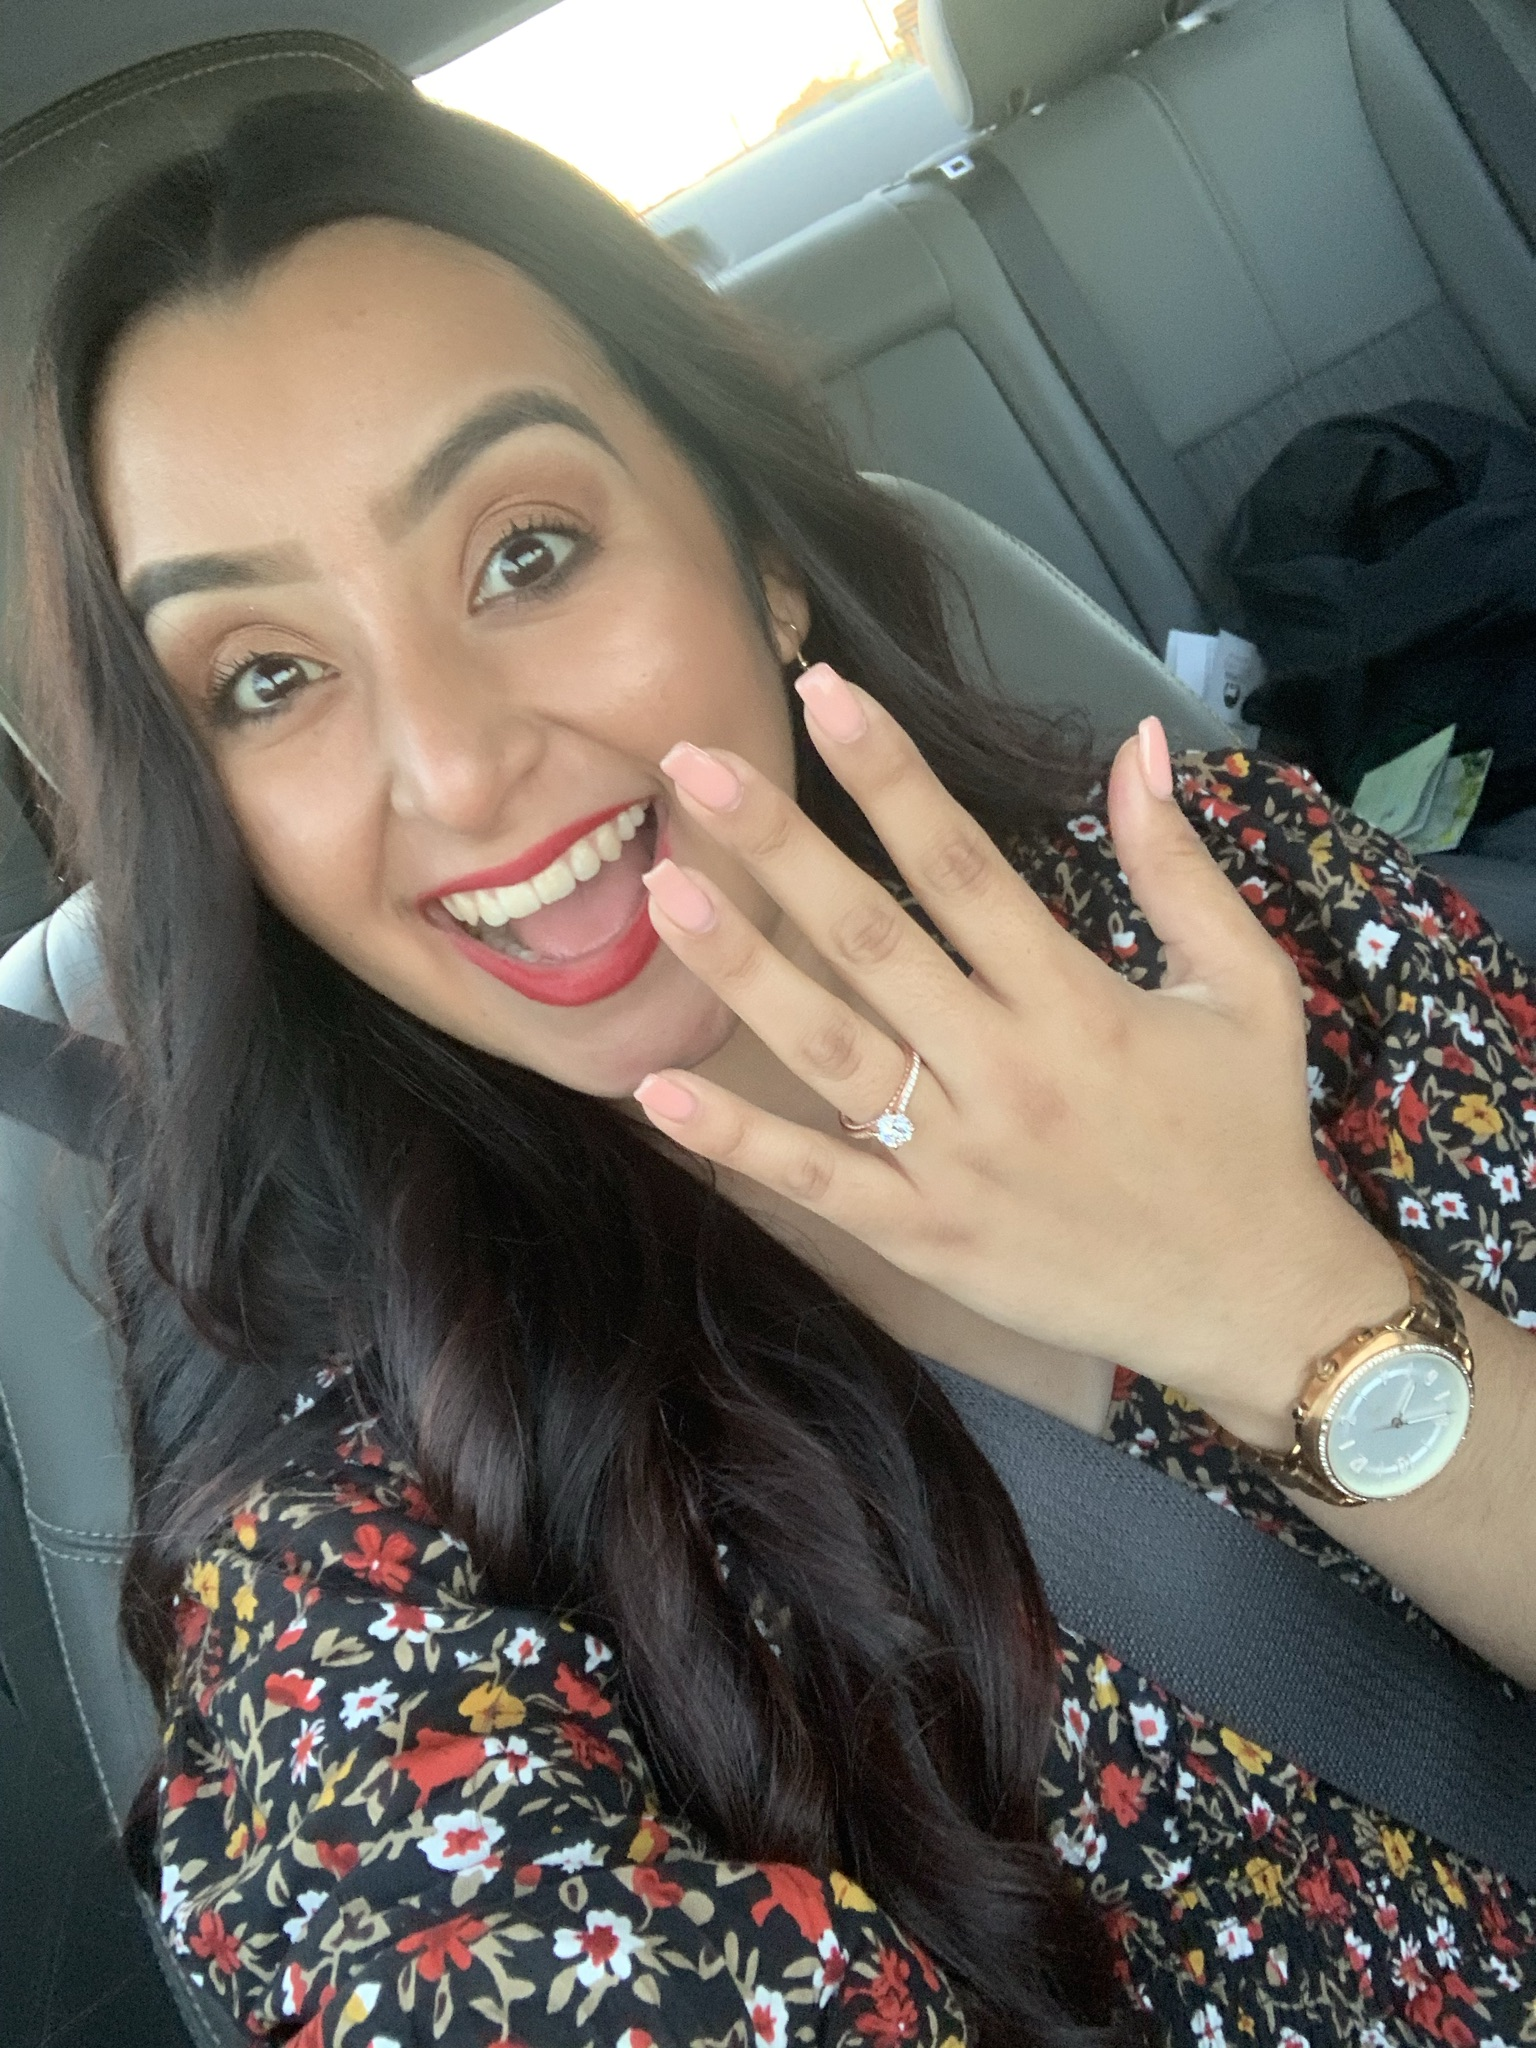 girl wearing floral dress red lipstick watch in the car smiles big while holding up hand with new engagement ring